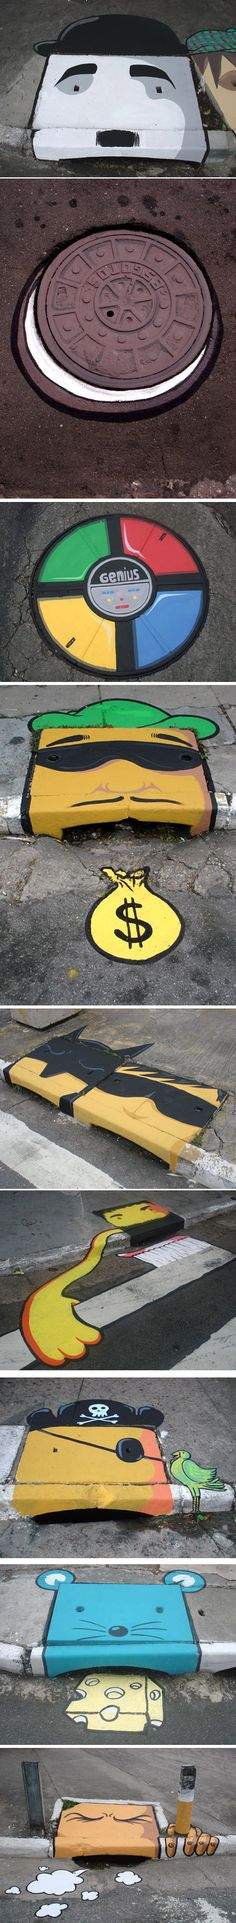 Street Art, sidewalk art